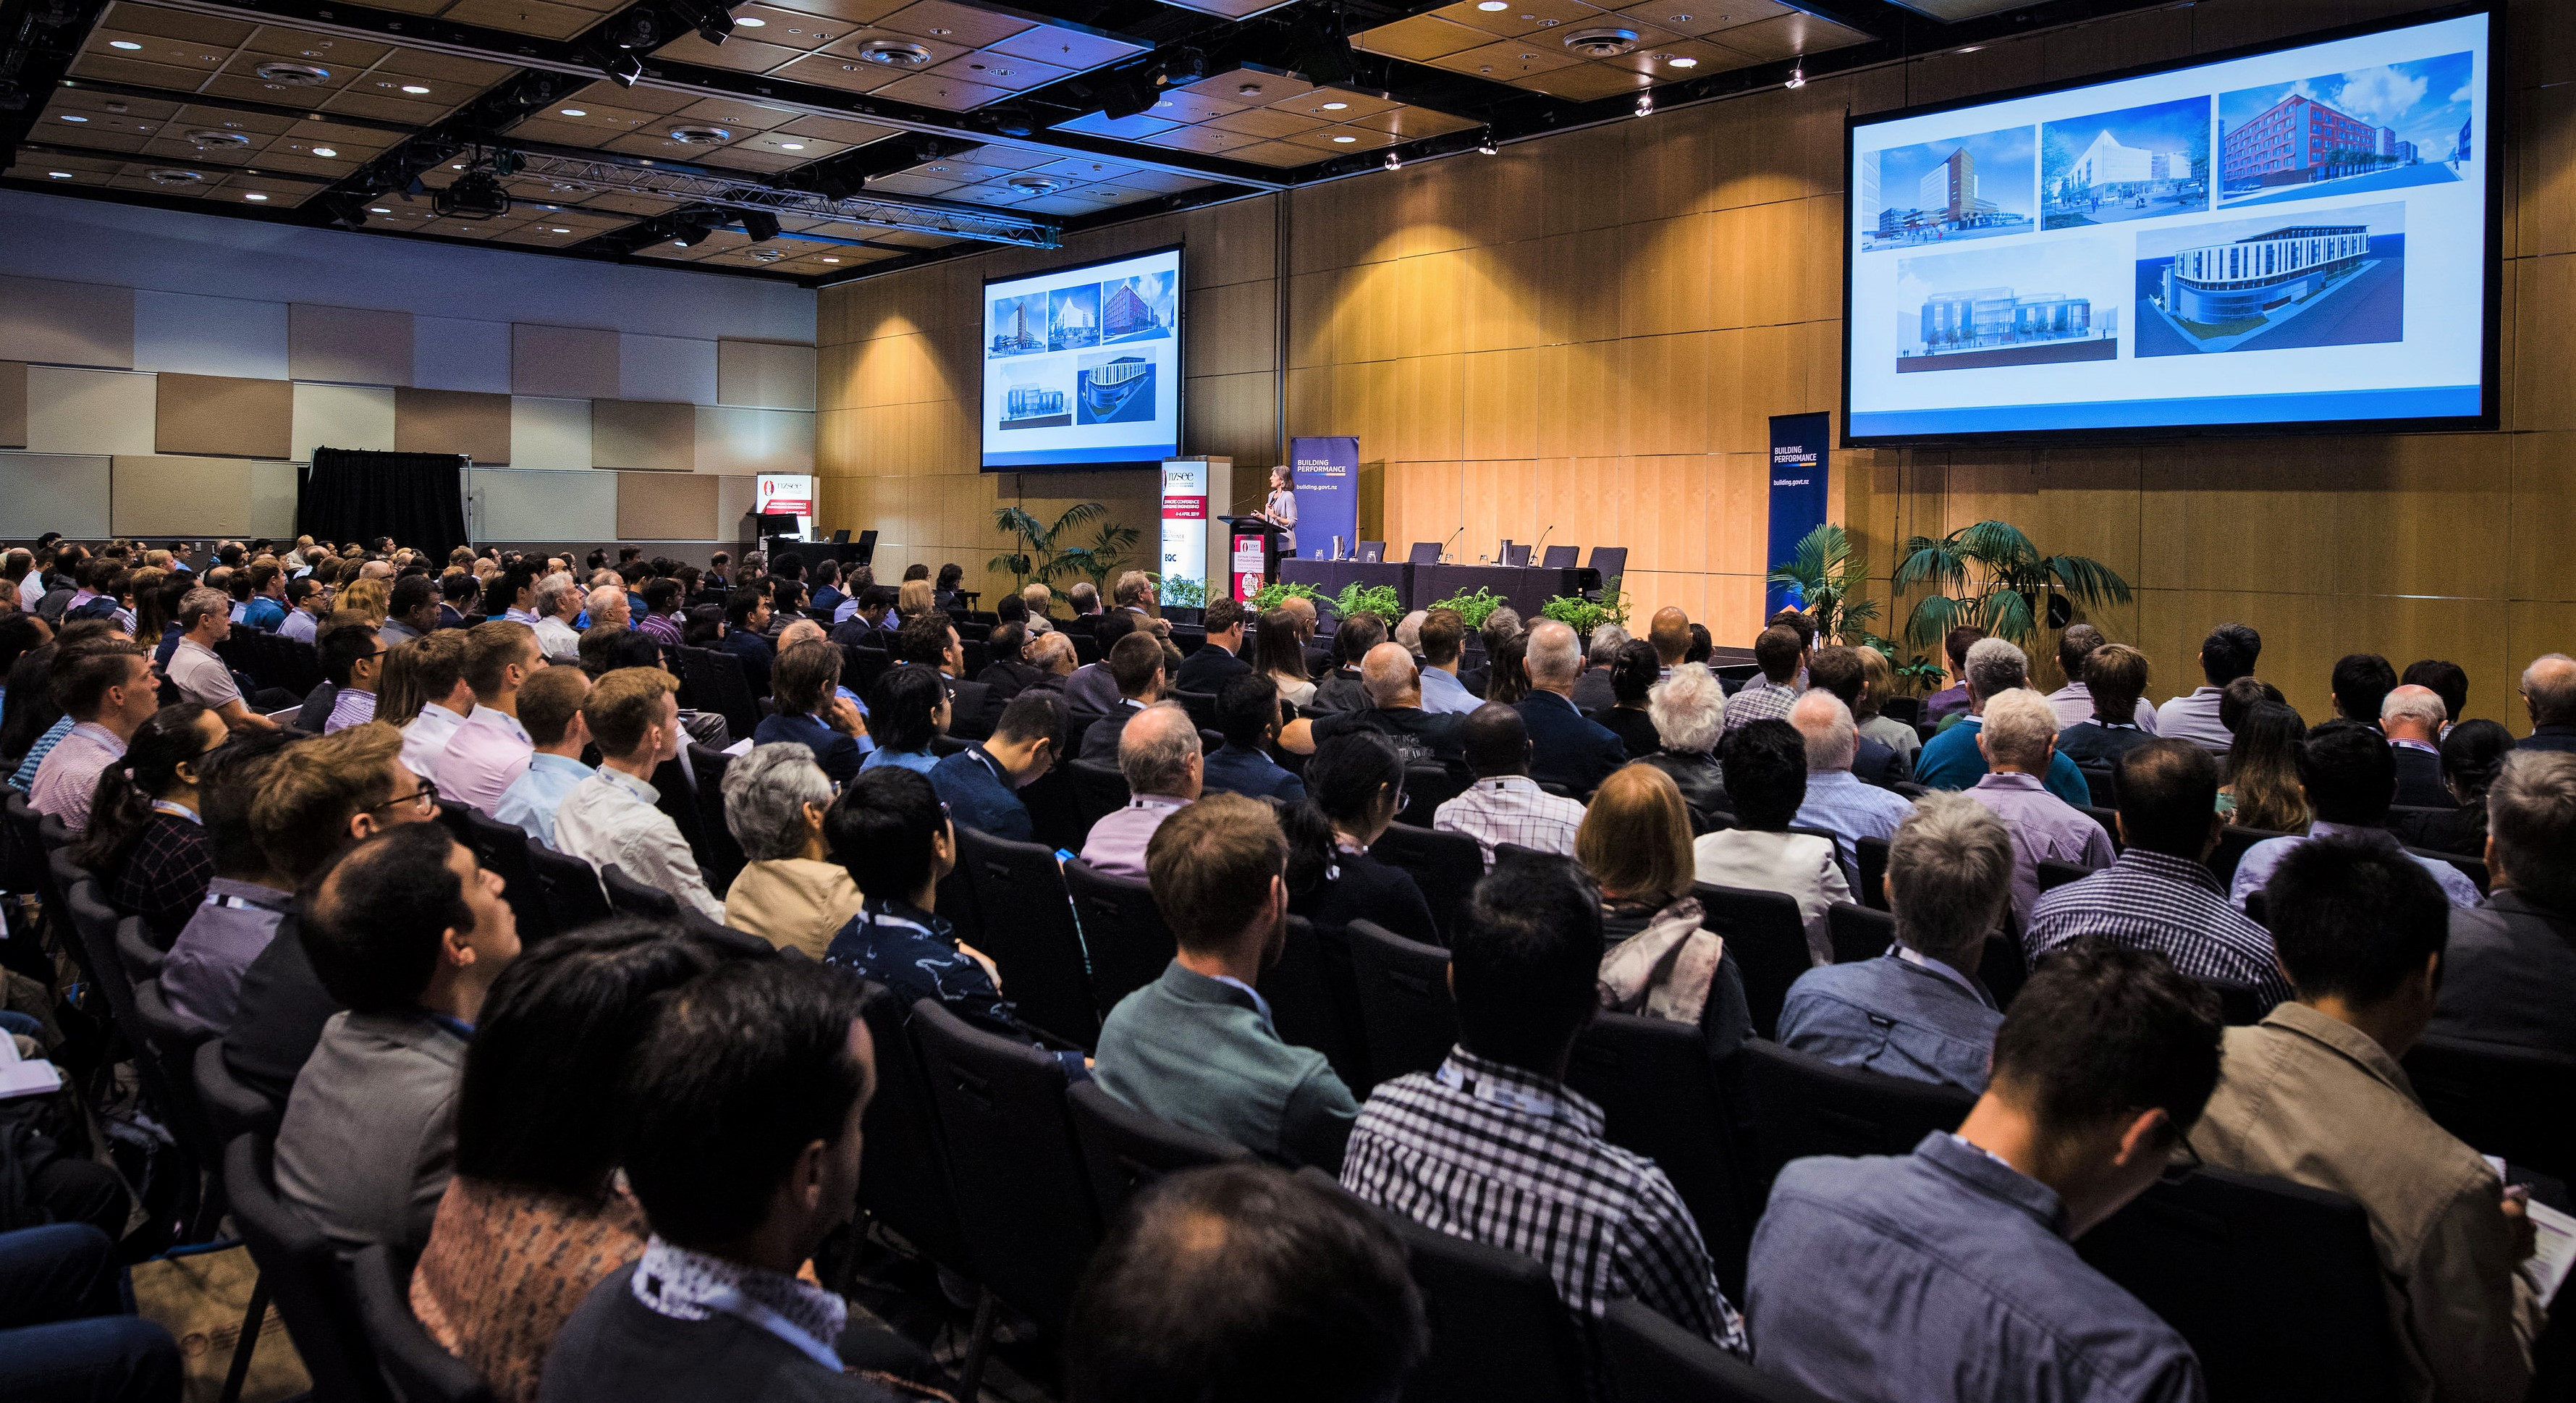 Maryann Phipps Delivers Keynote Address at the 2019 Pacific Conference on Earthquake Engineering